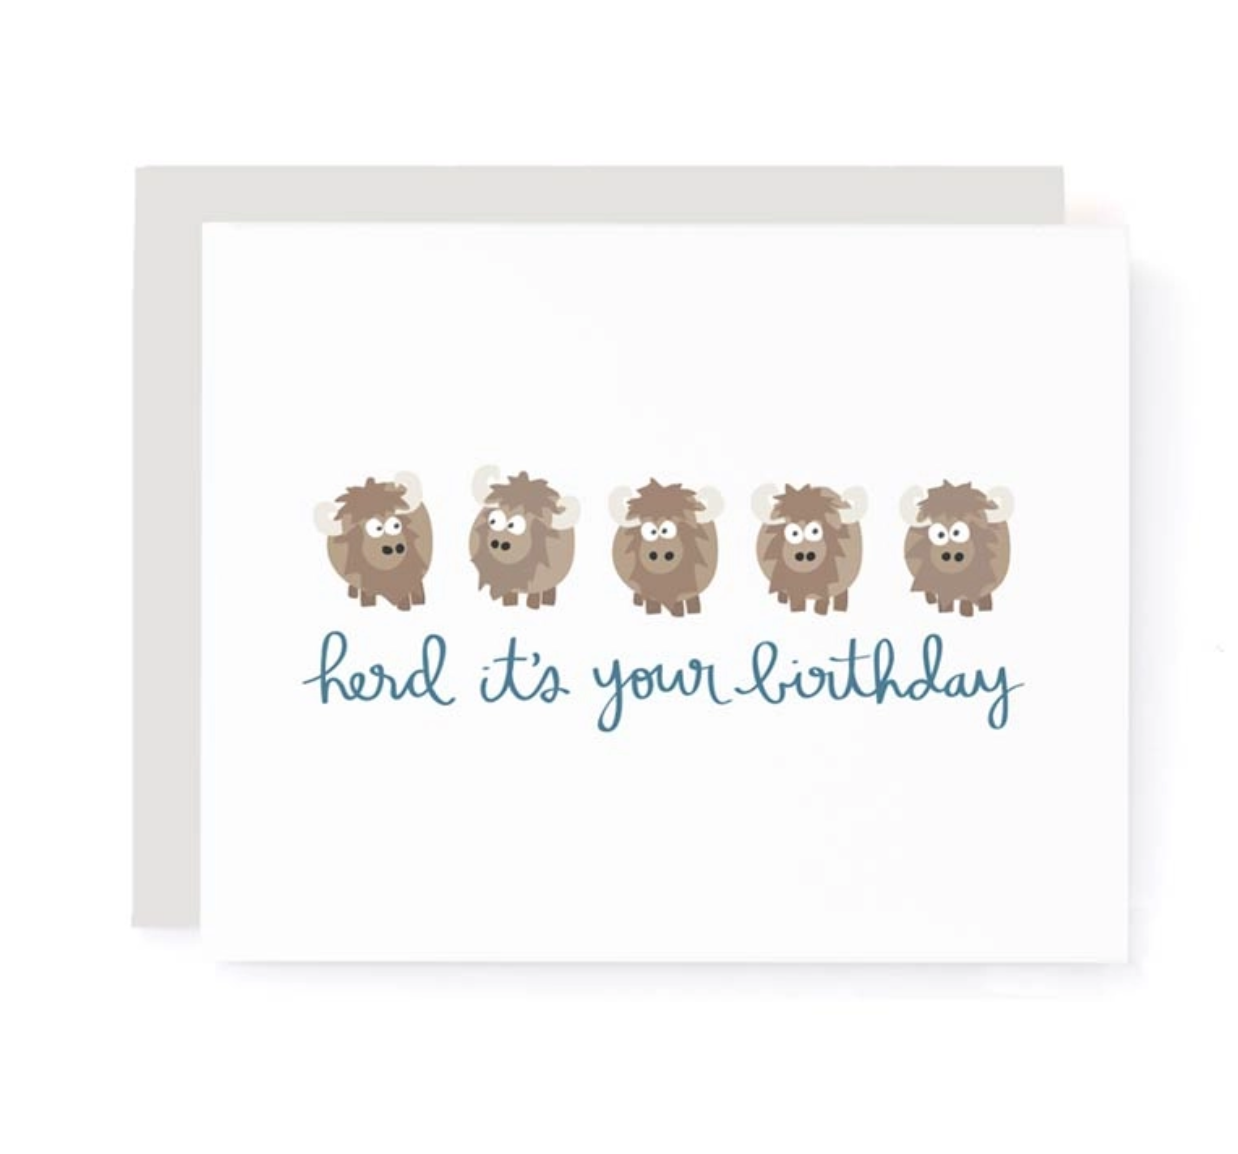 A Jar of Pickles Herd It's Your Birthday Birthday Card